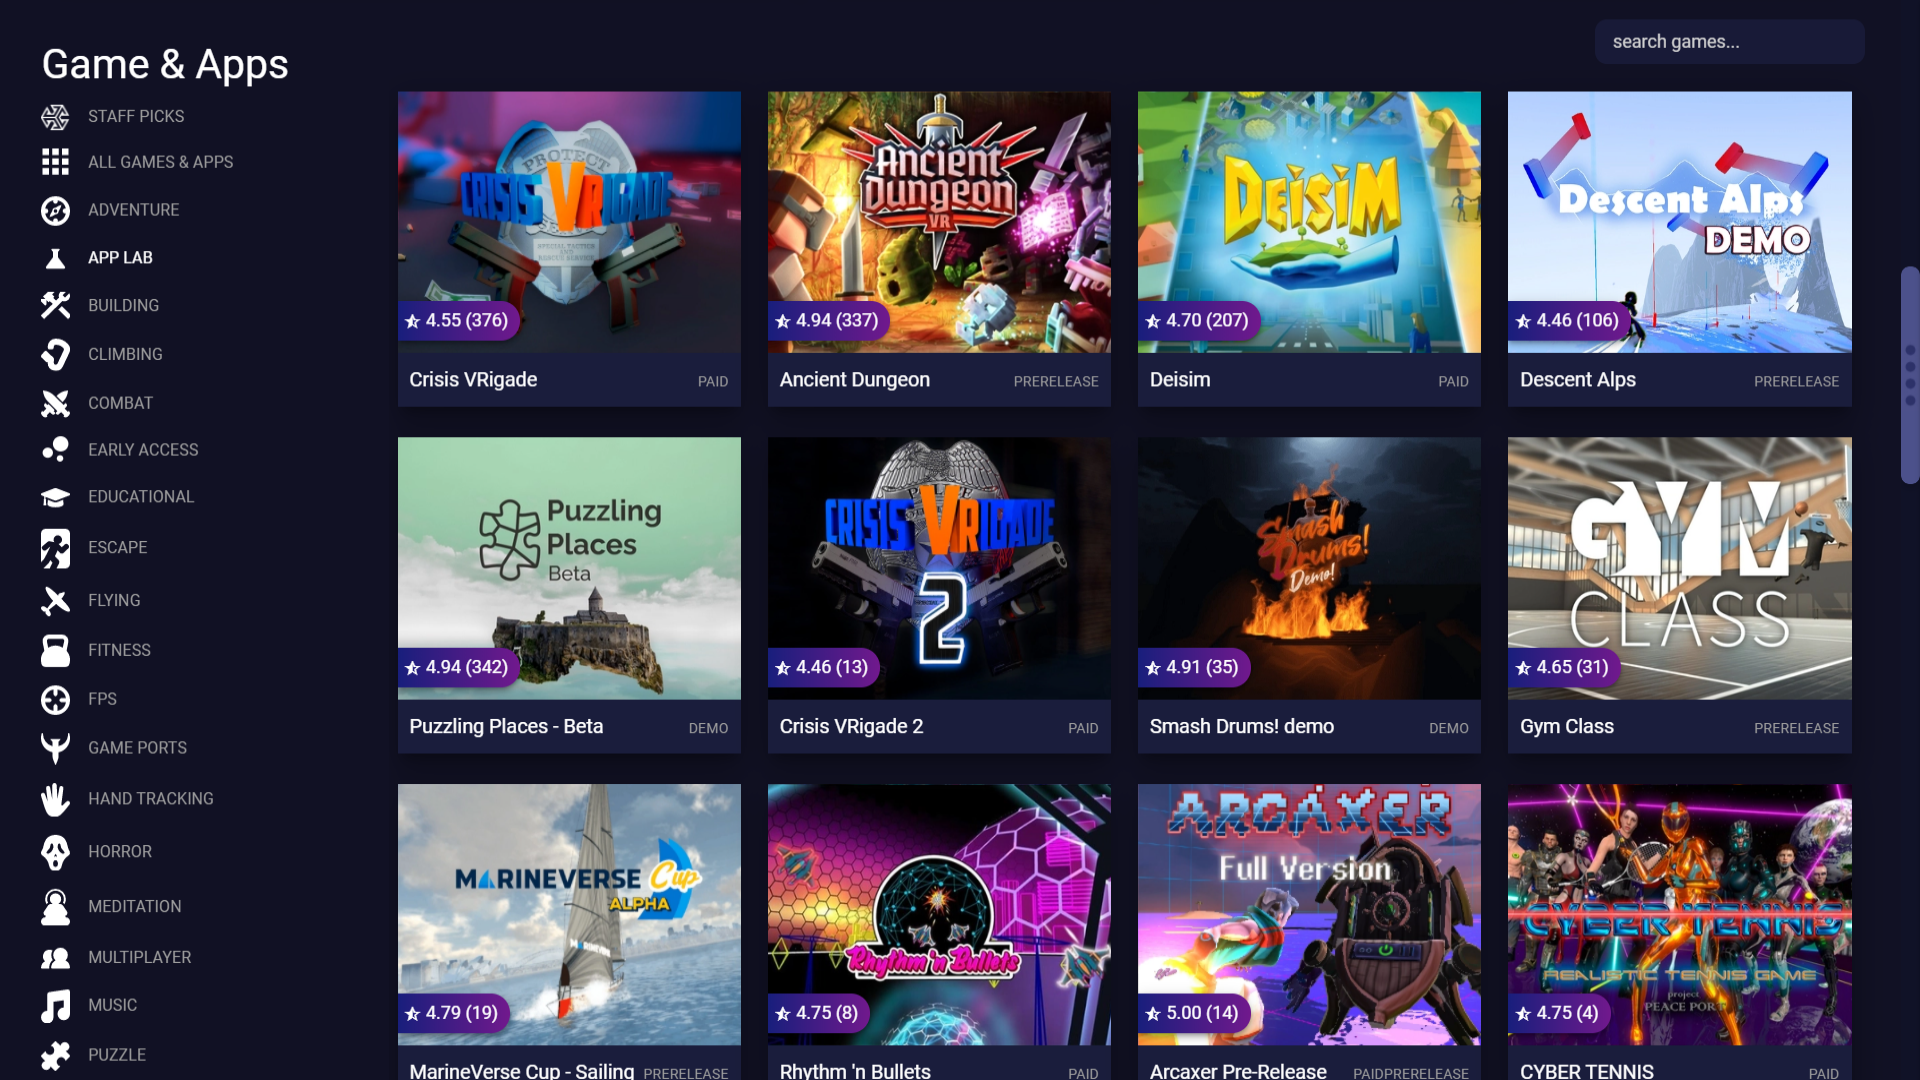 The SideQuest Unofficial Oculus Quest unlisted games and apps store is one of the most popular.